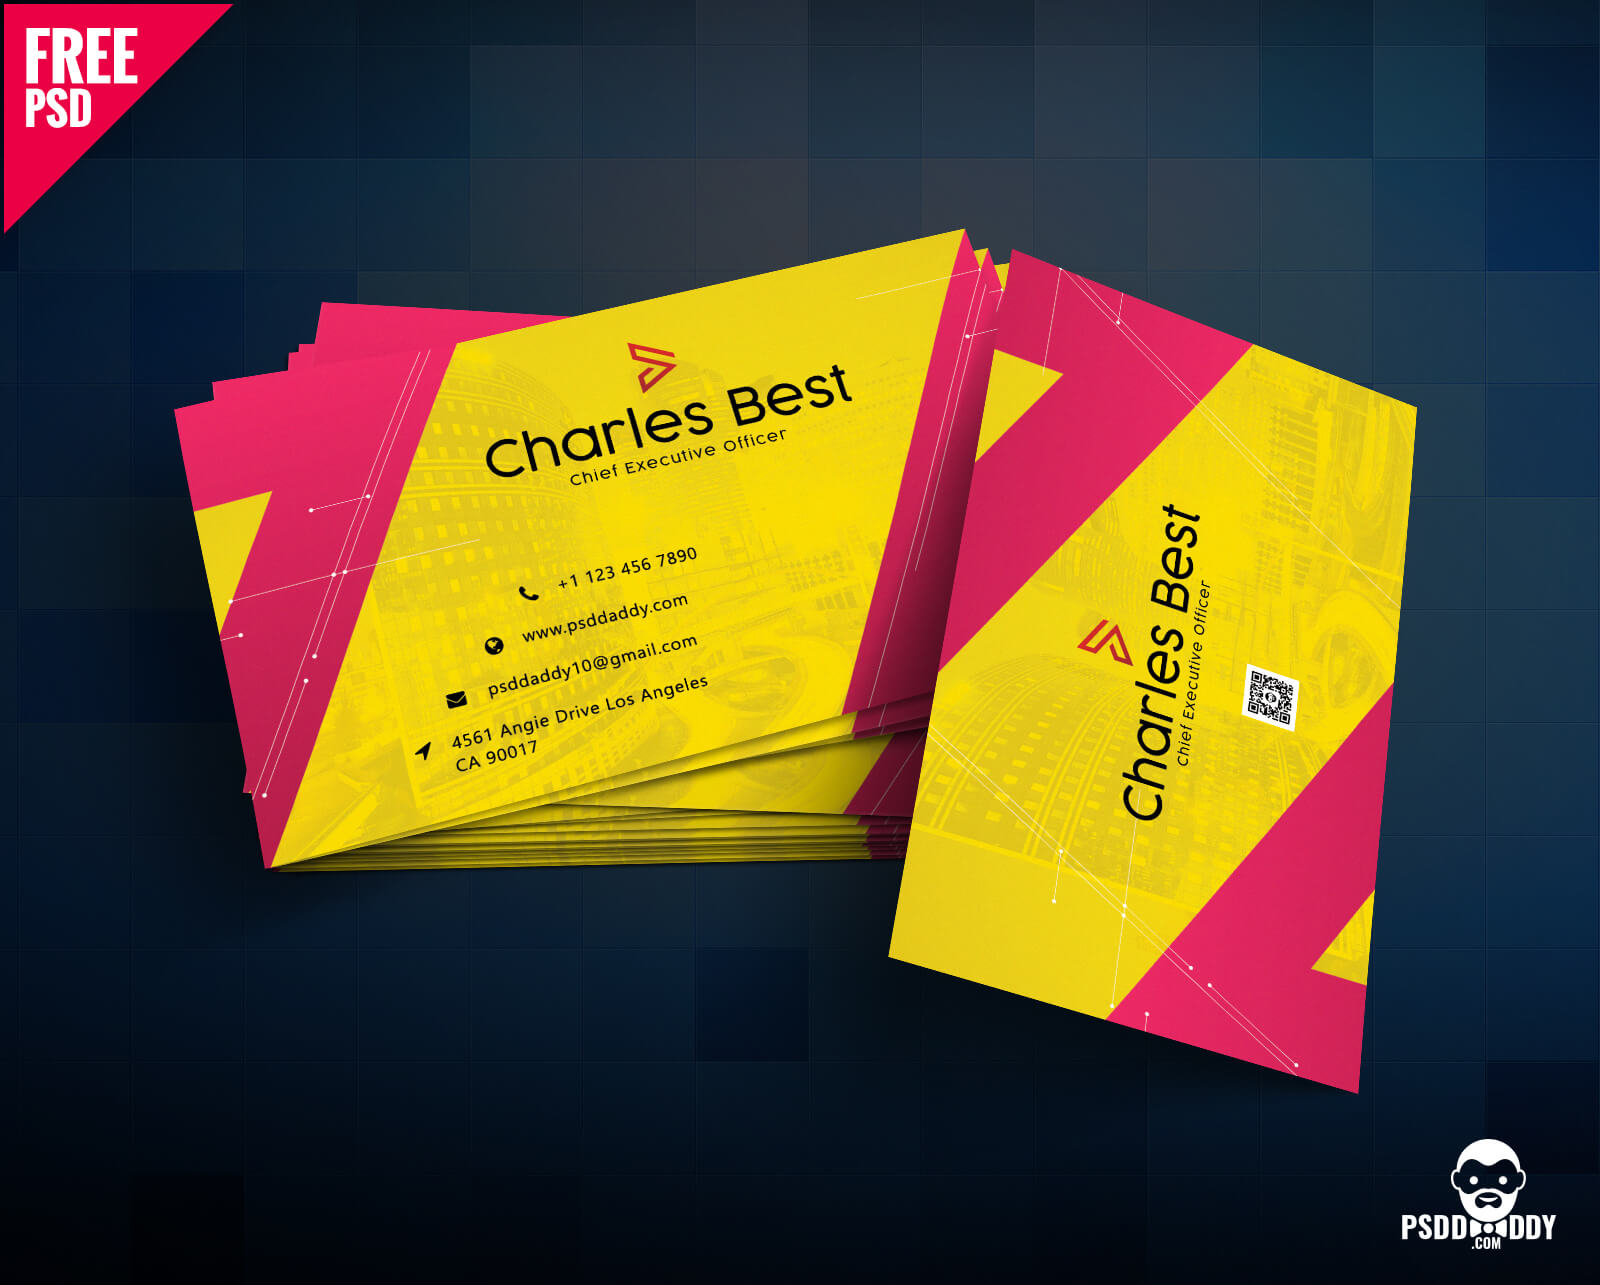 Download] Creative Business Card Free Psd | Psddaddy With Business Card Template Photoshop Cs6